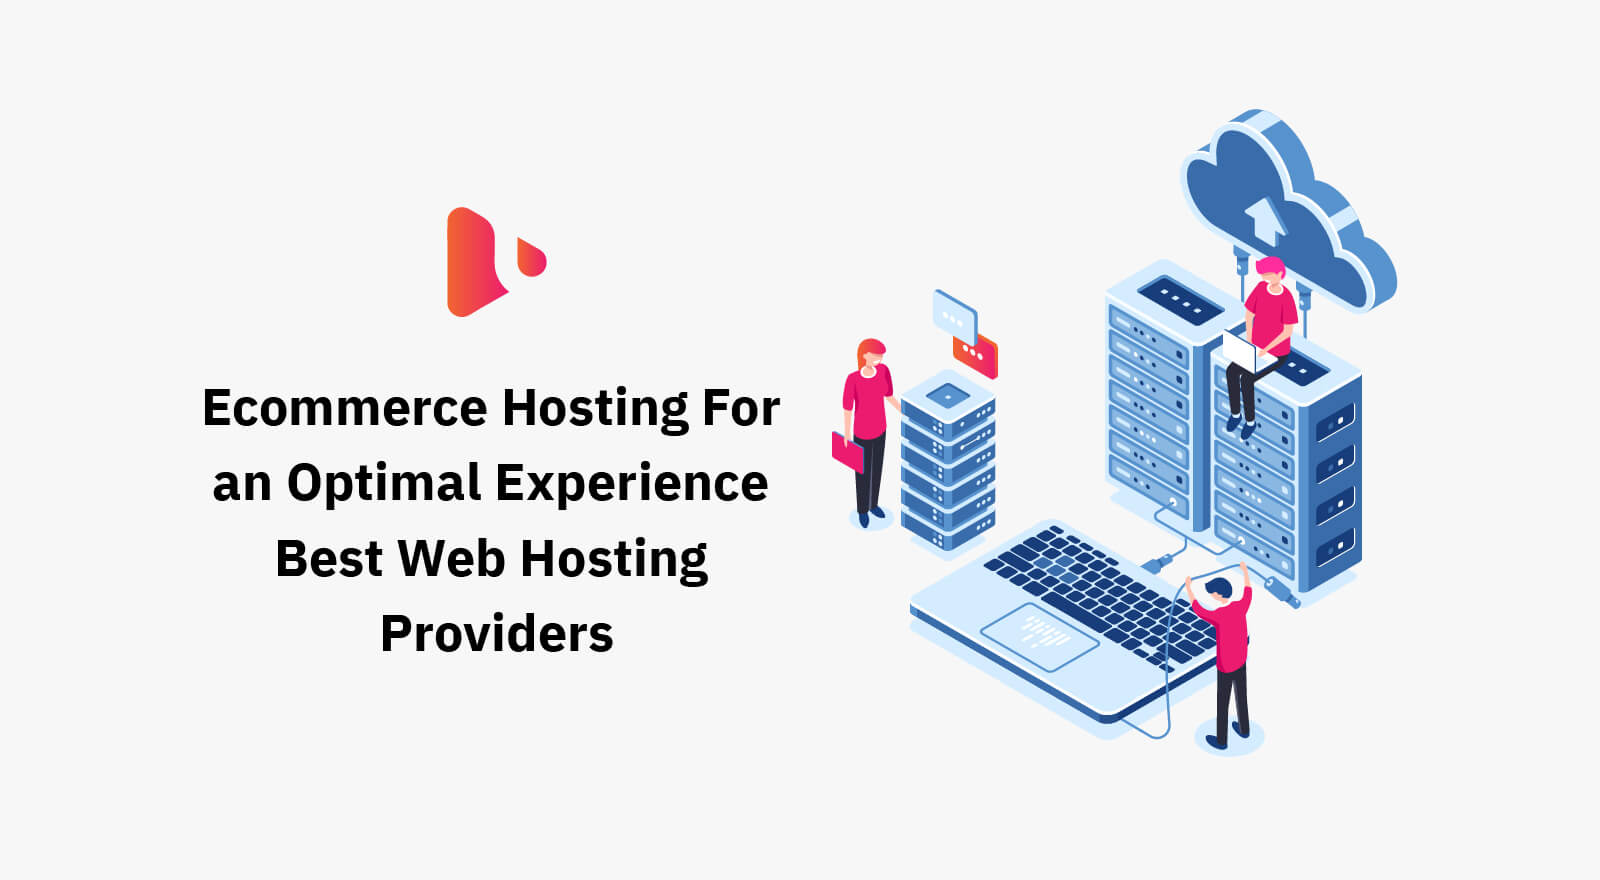 Ecommerce Hosting For an Optimal Experience Best Web Hosting Providers